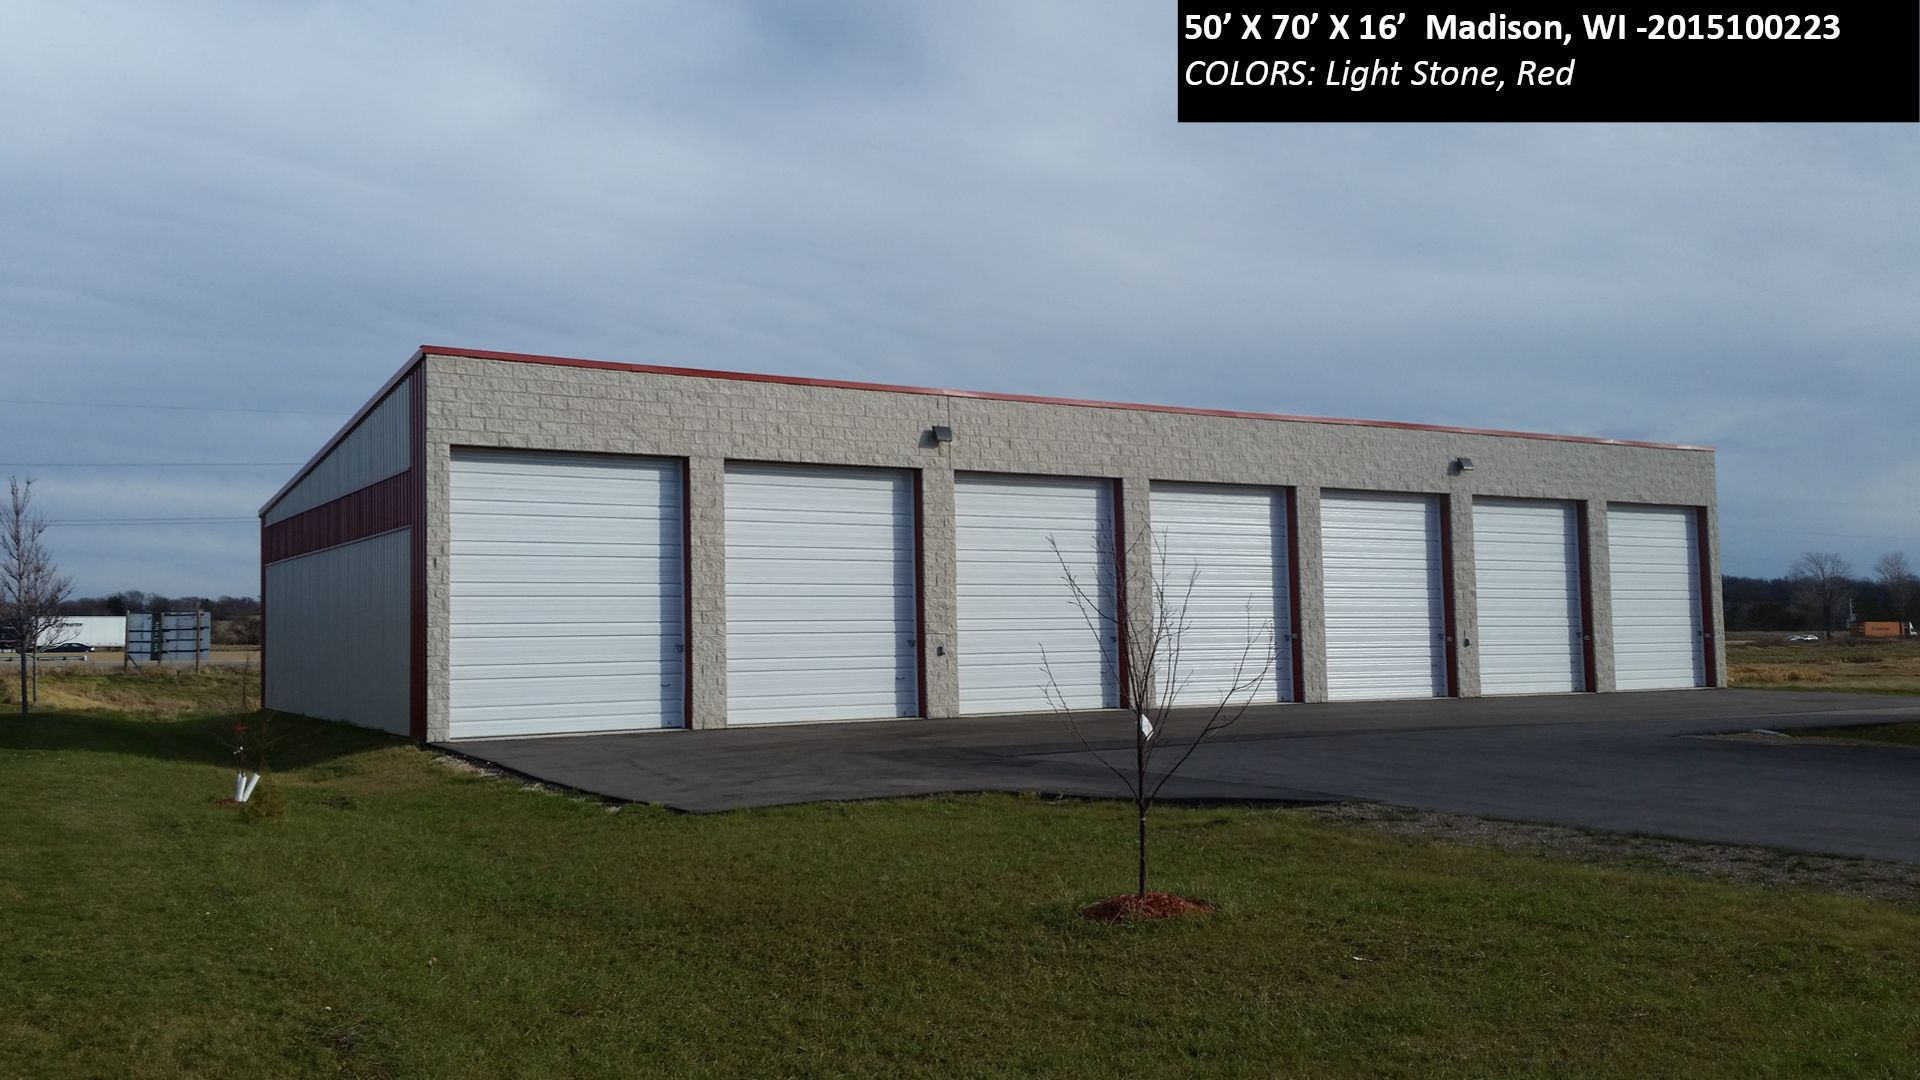 50 X70 X16 Cleary Rv Storage Building In Madison Wi Colors Light Stone Red Cleary Buildings Rv Storage Built In Storage